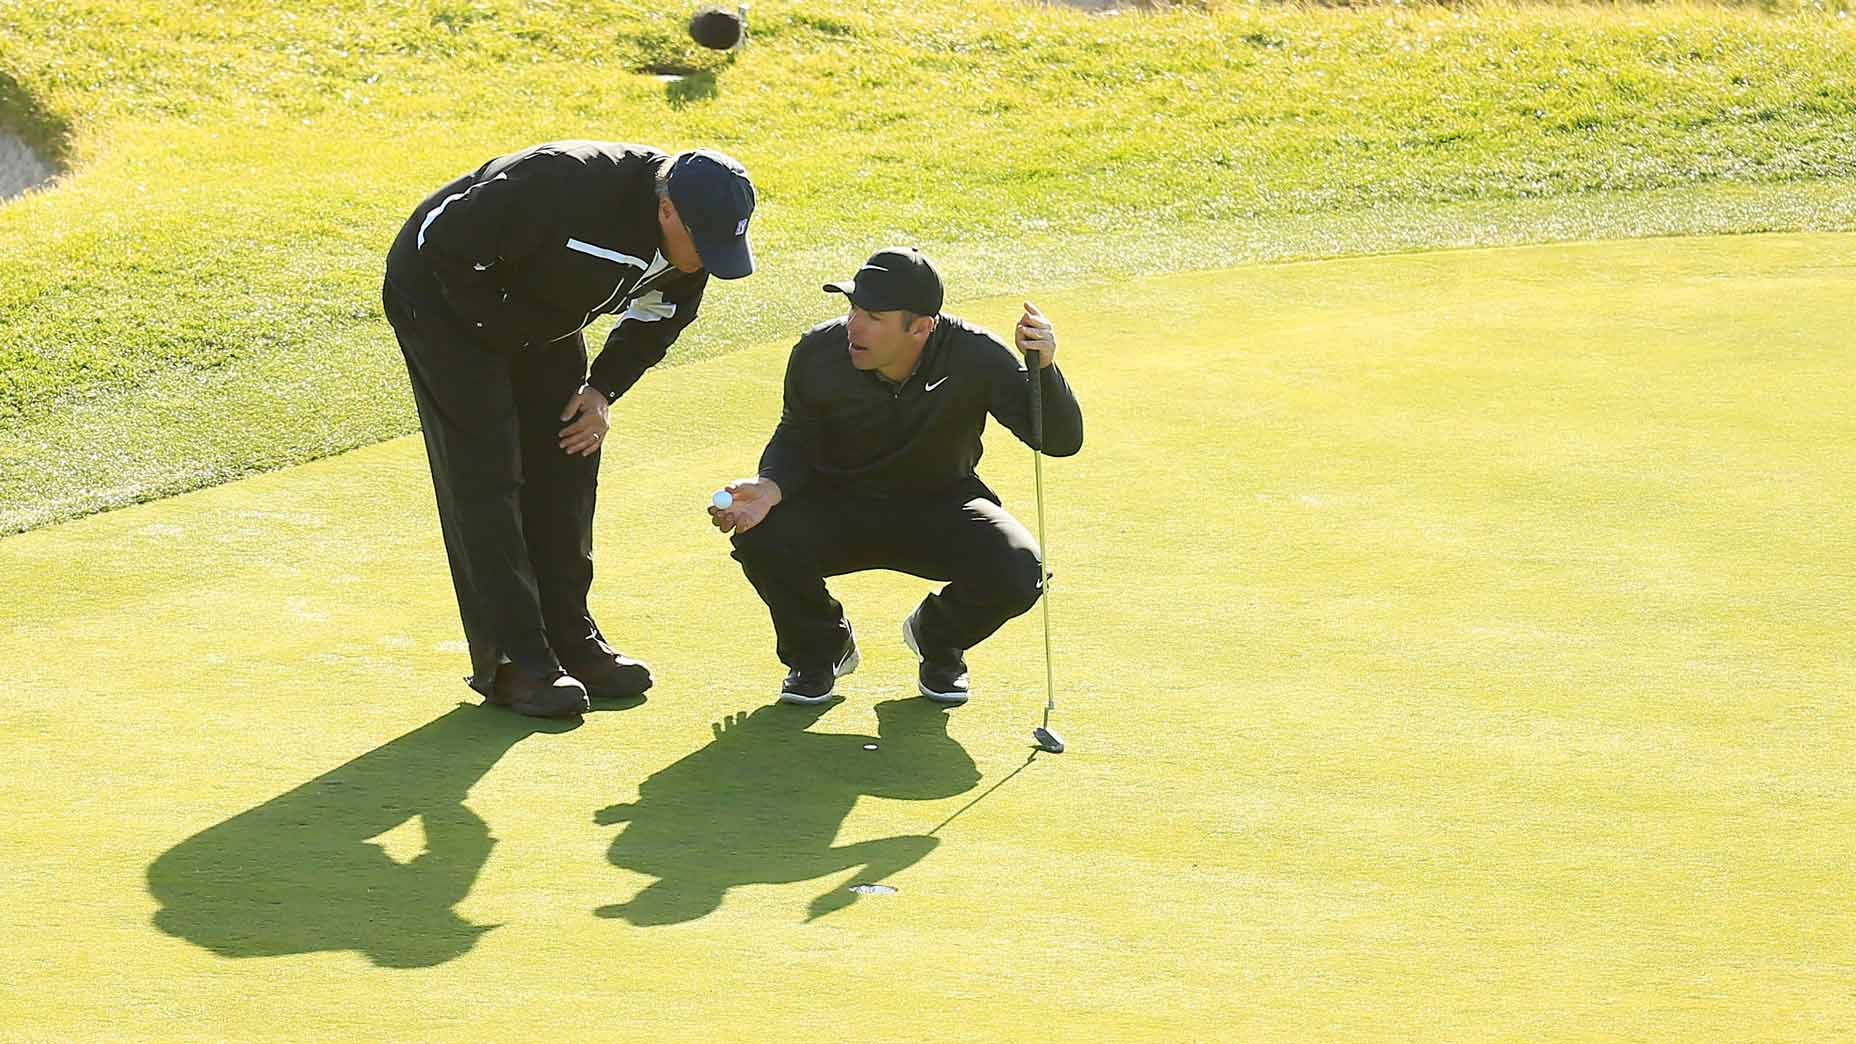 What's the ruling if your ball ends up on the wrong putting green?